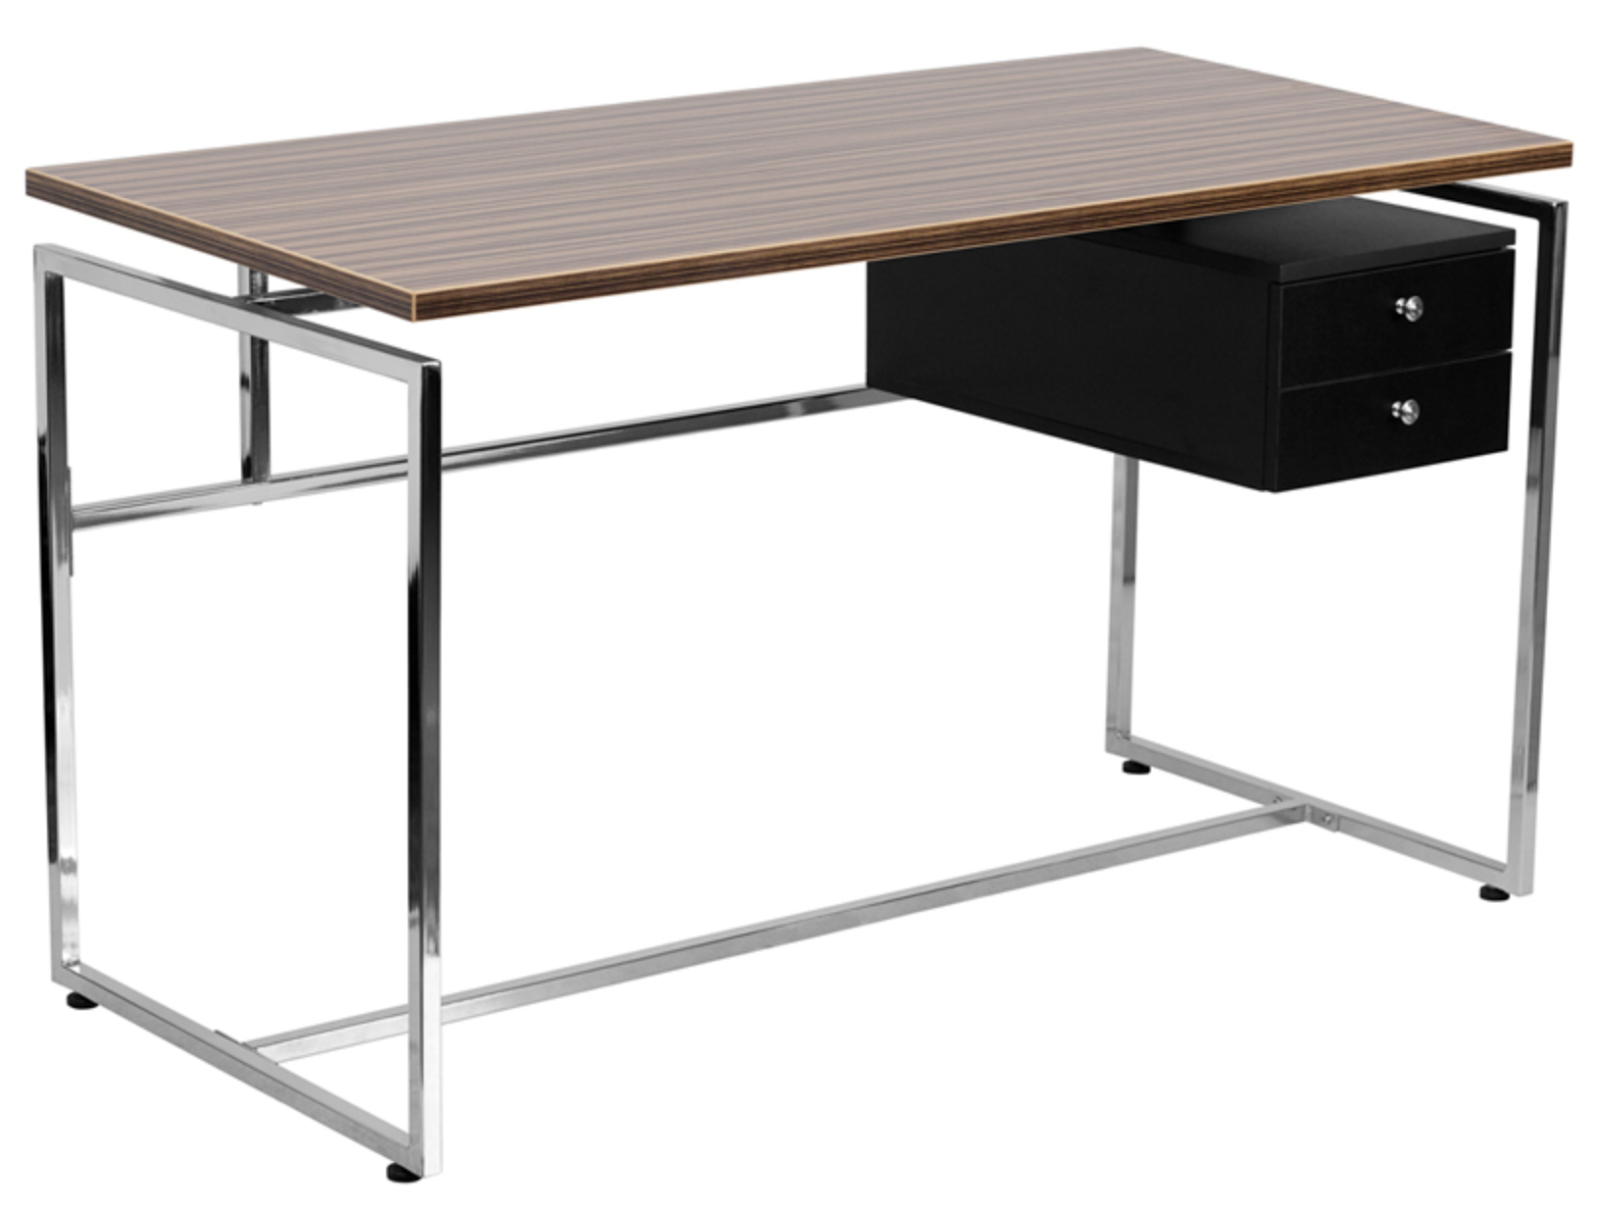 The Office Furniture Blog At Bargain